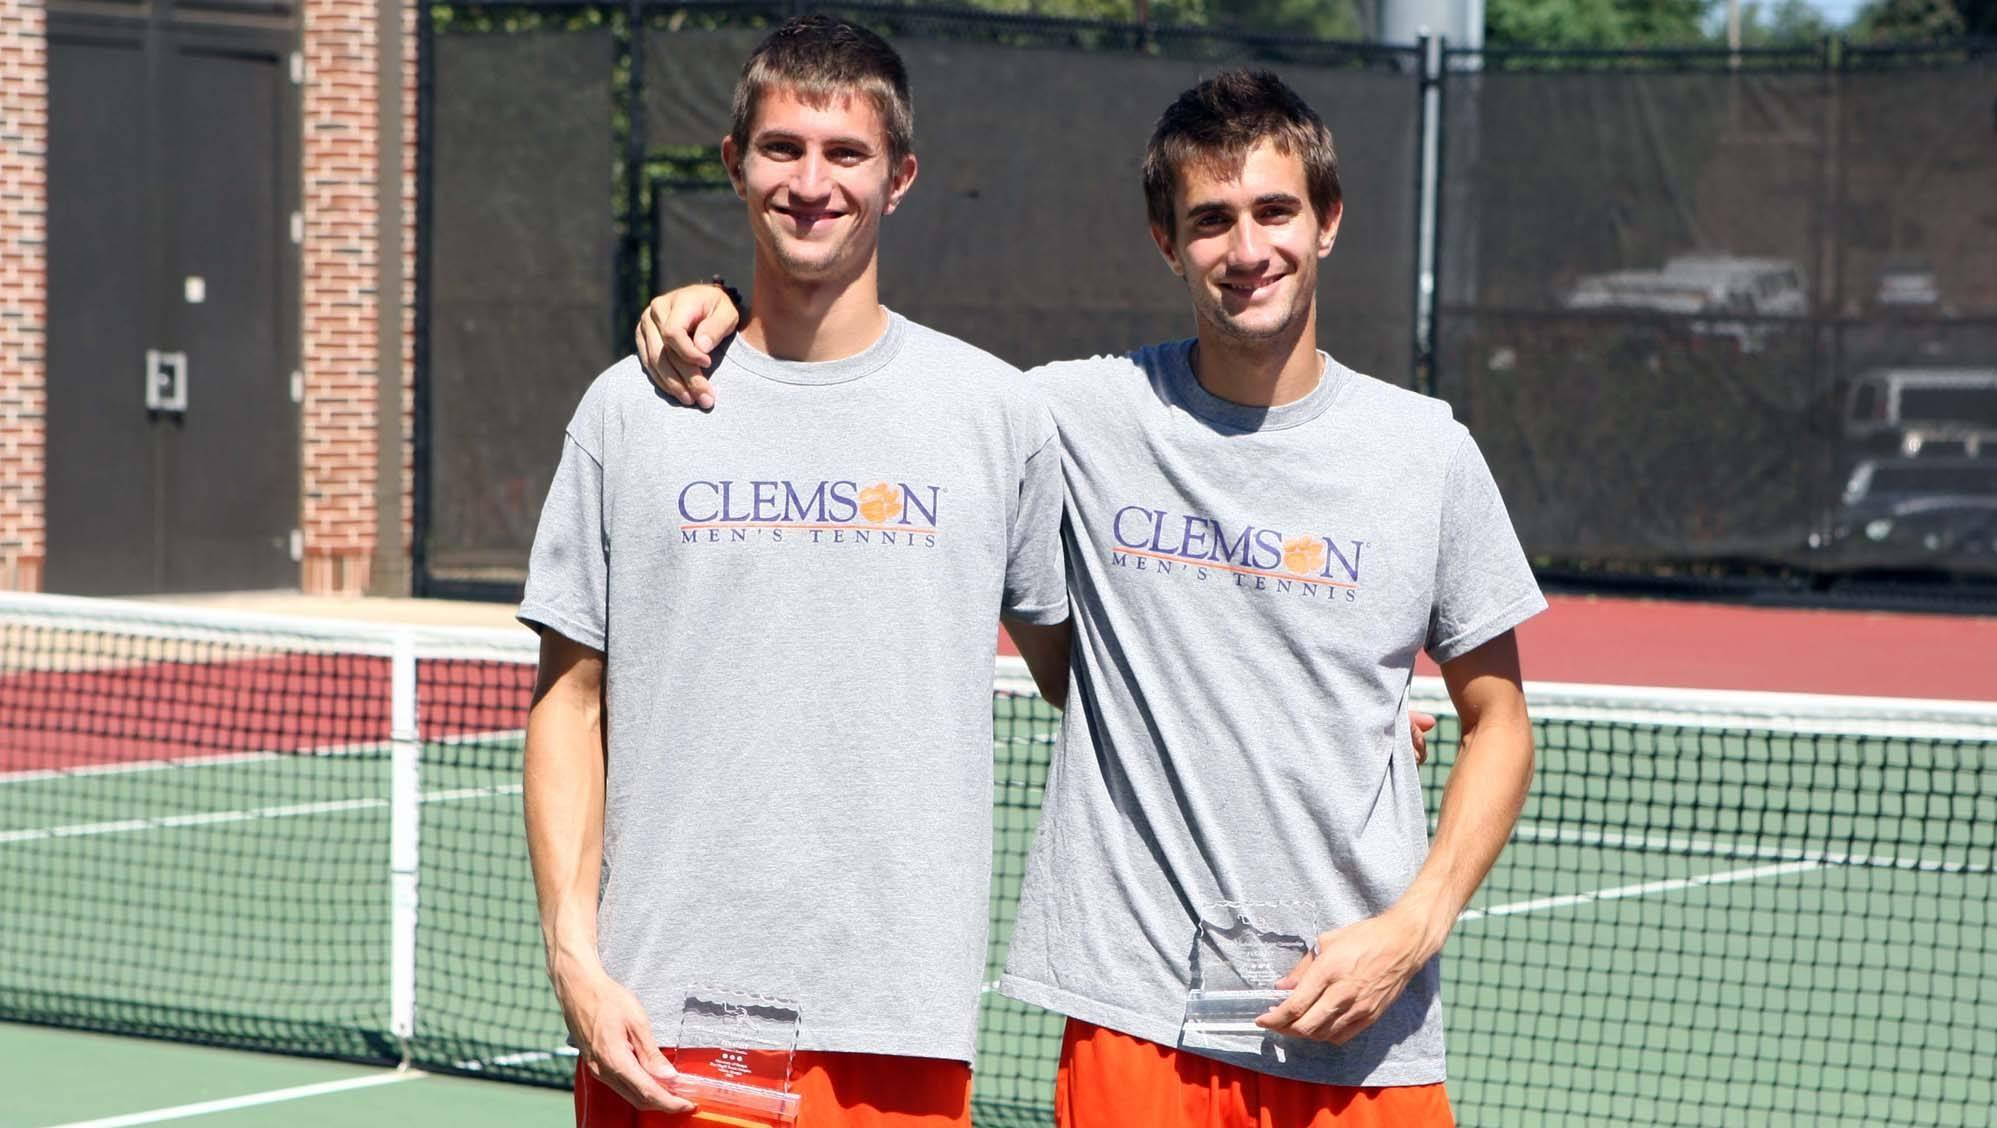 Clemson's Doubles Team Advances